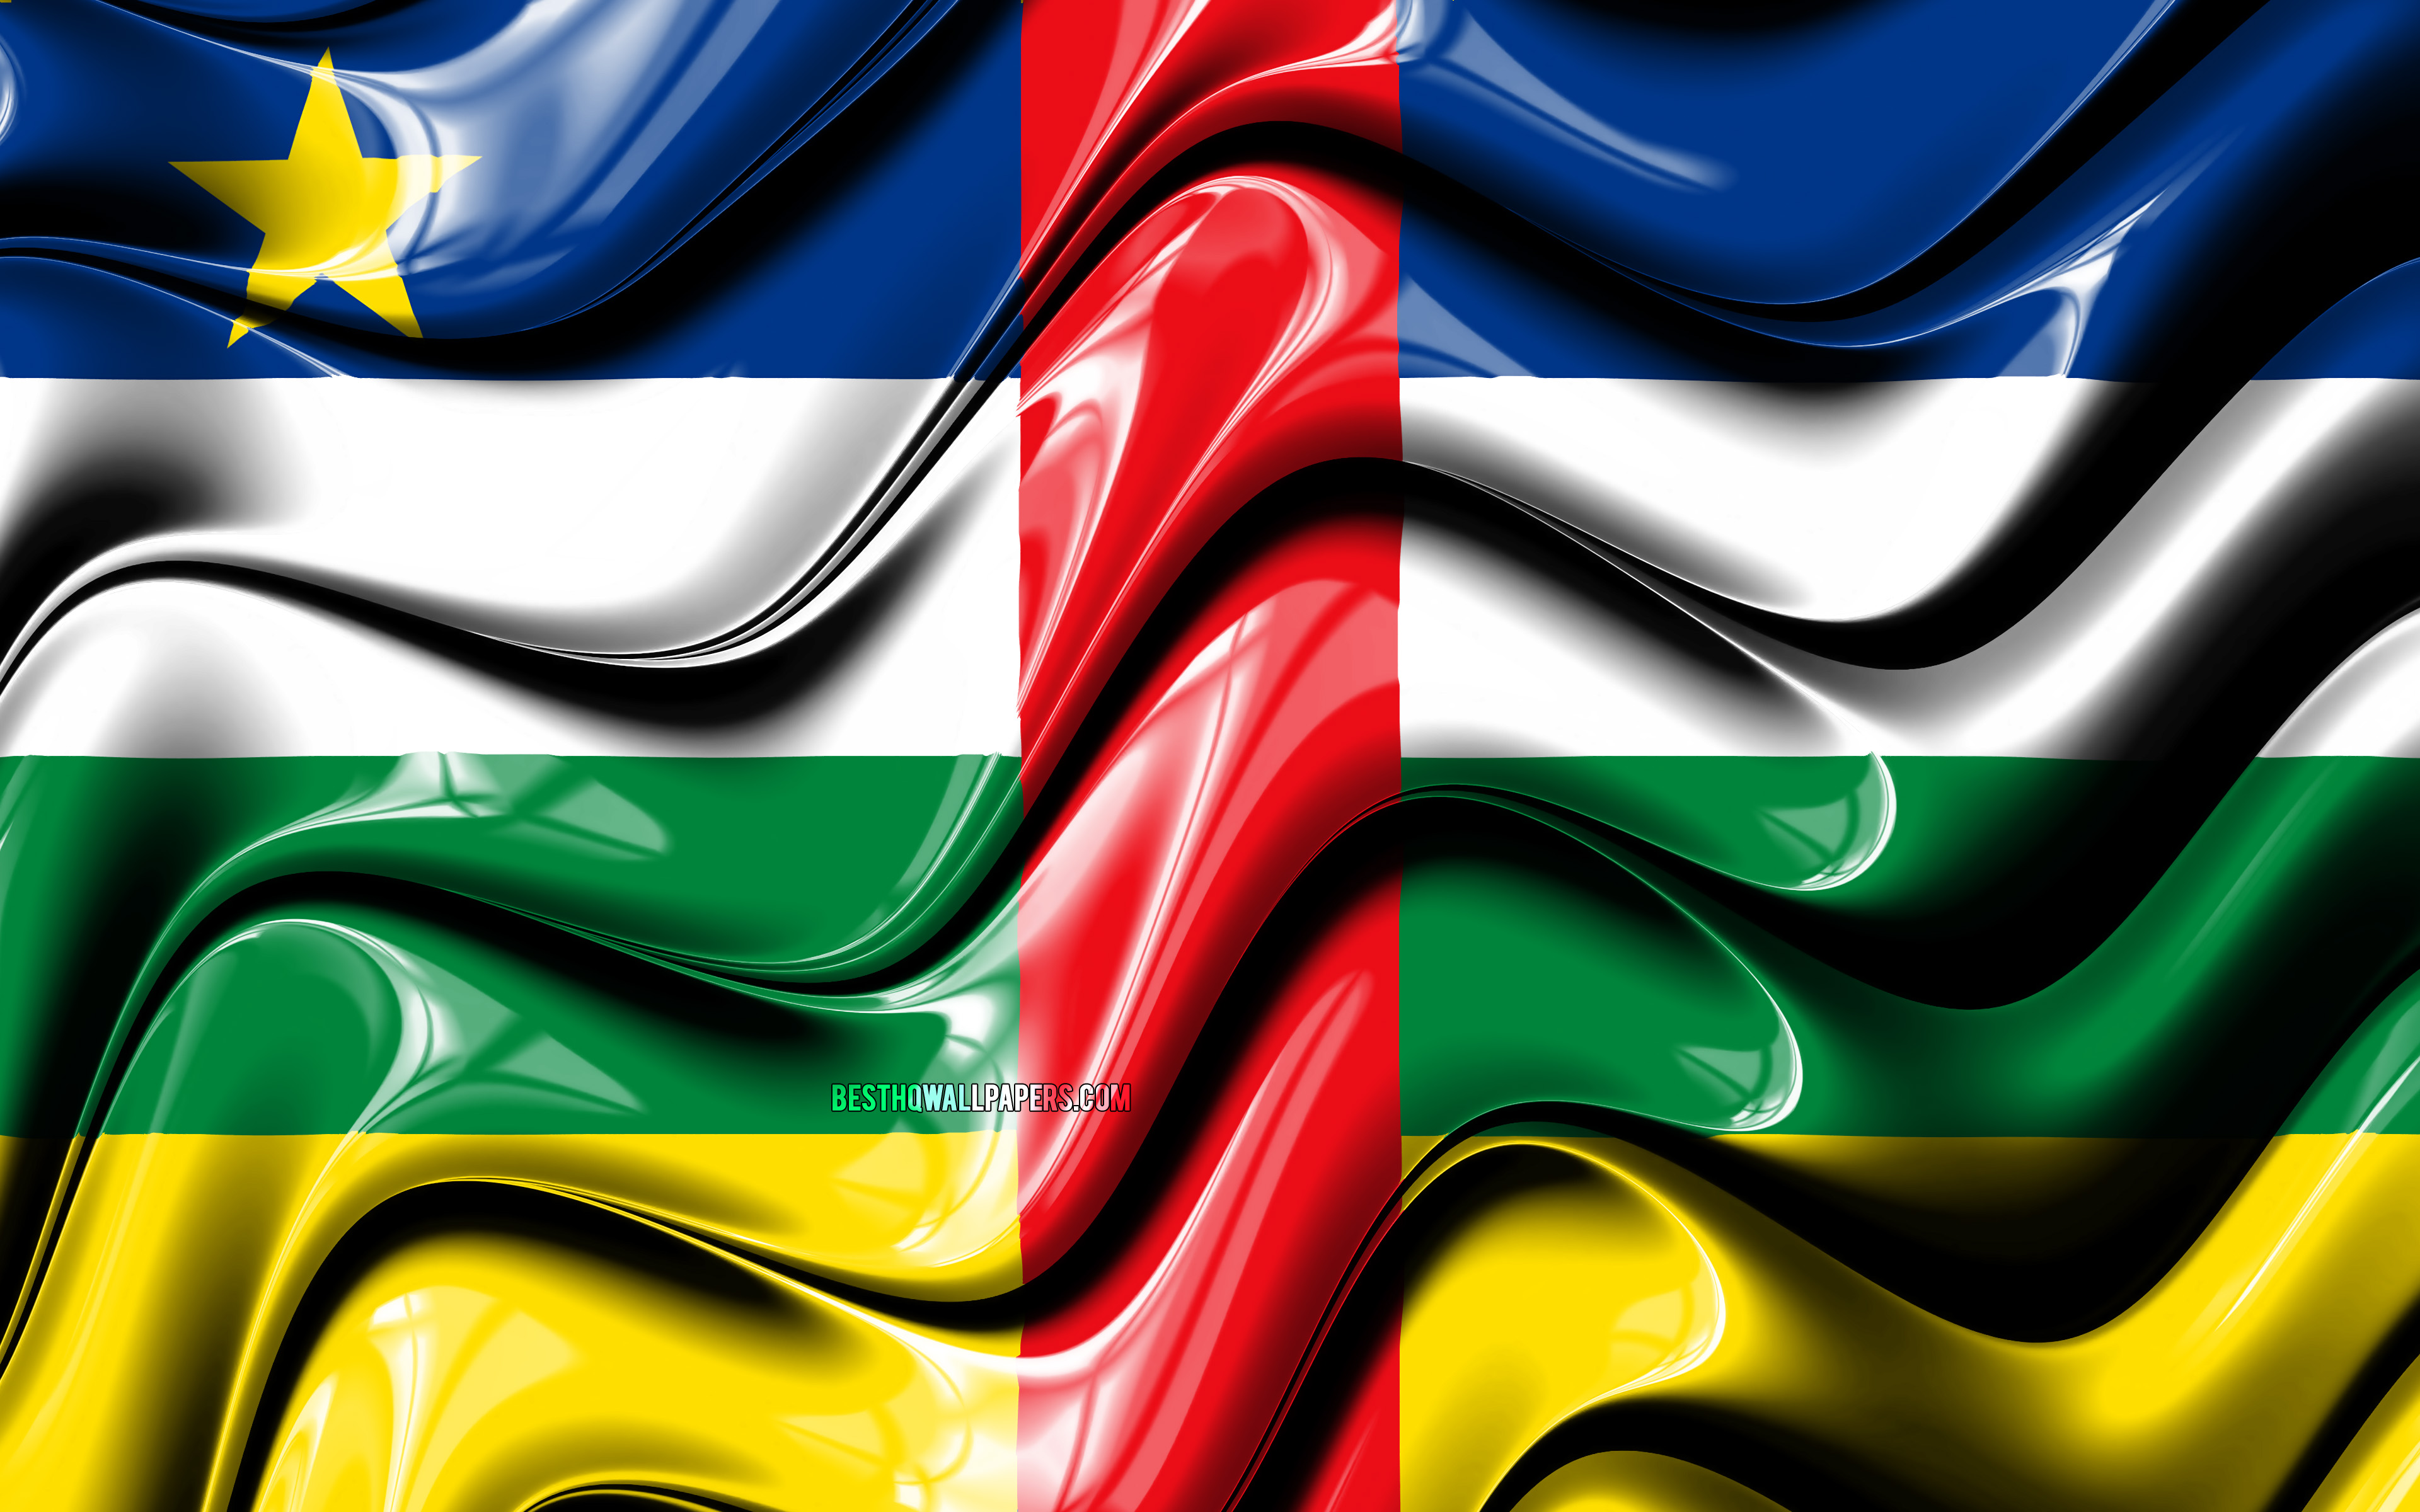 Download wallpapers Central African Republic flag 4k Africa 3840x2400